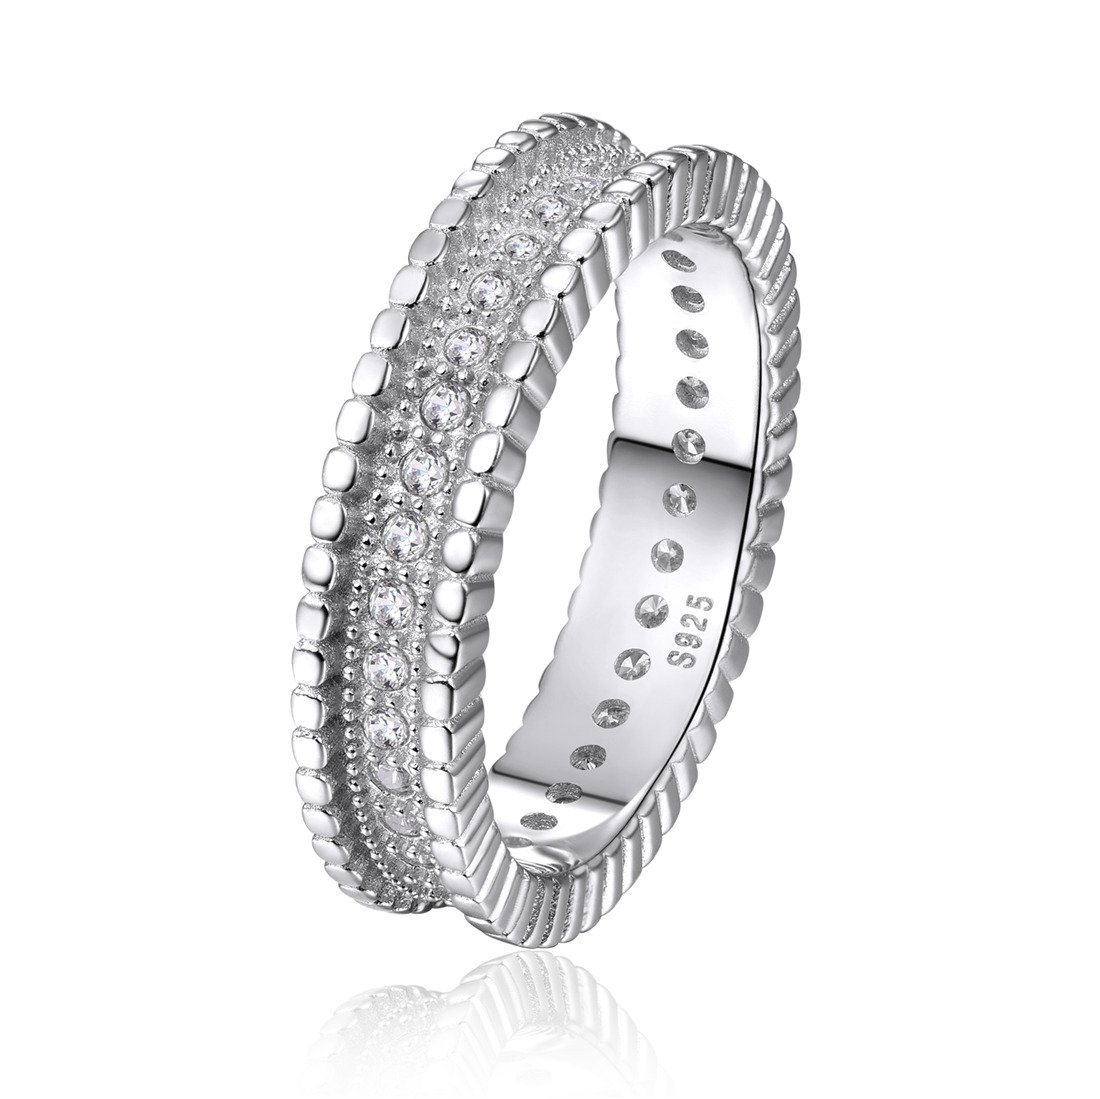 CZ 925 Sterling Silver Stackable Eternity Ring Cubic Zirconia Wedding Engagement Band for Women-Size 9